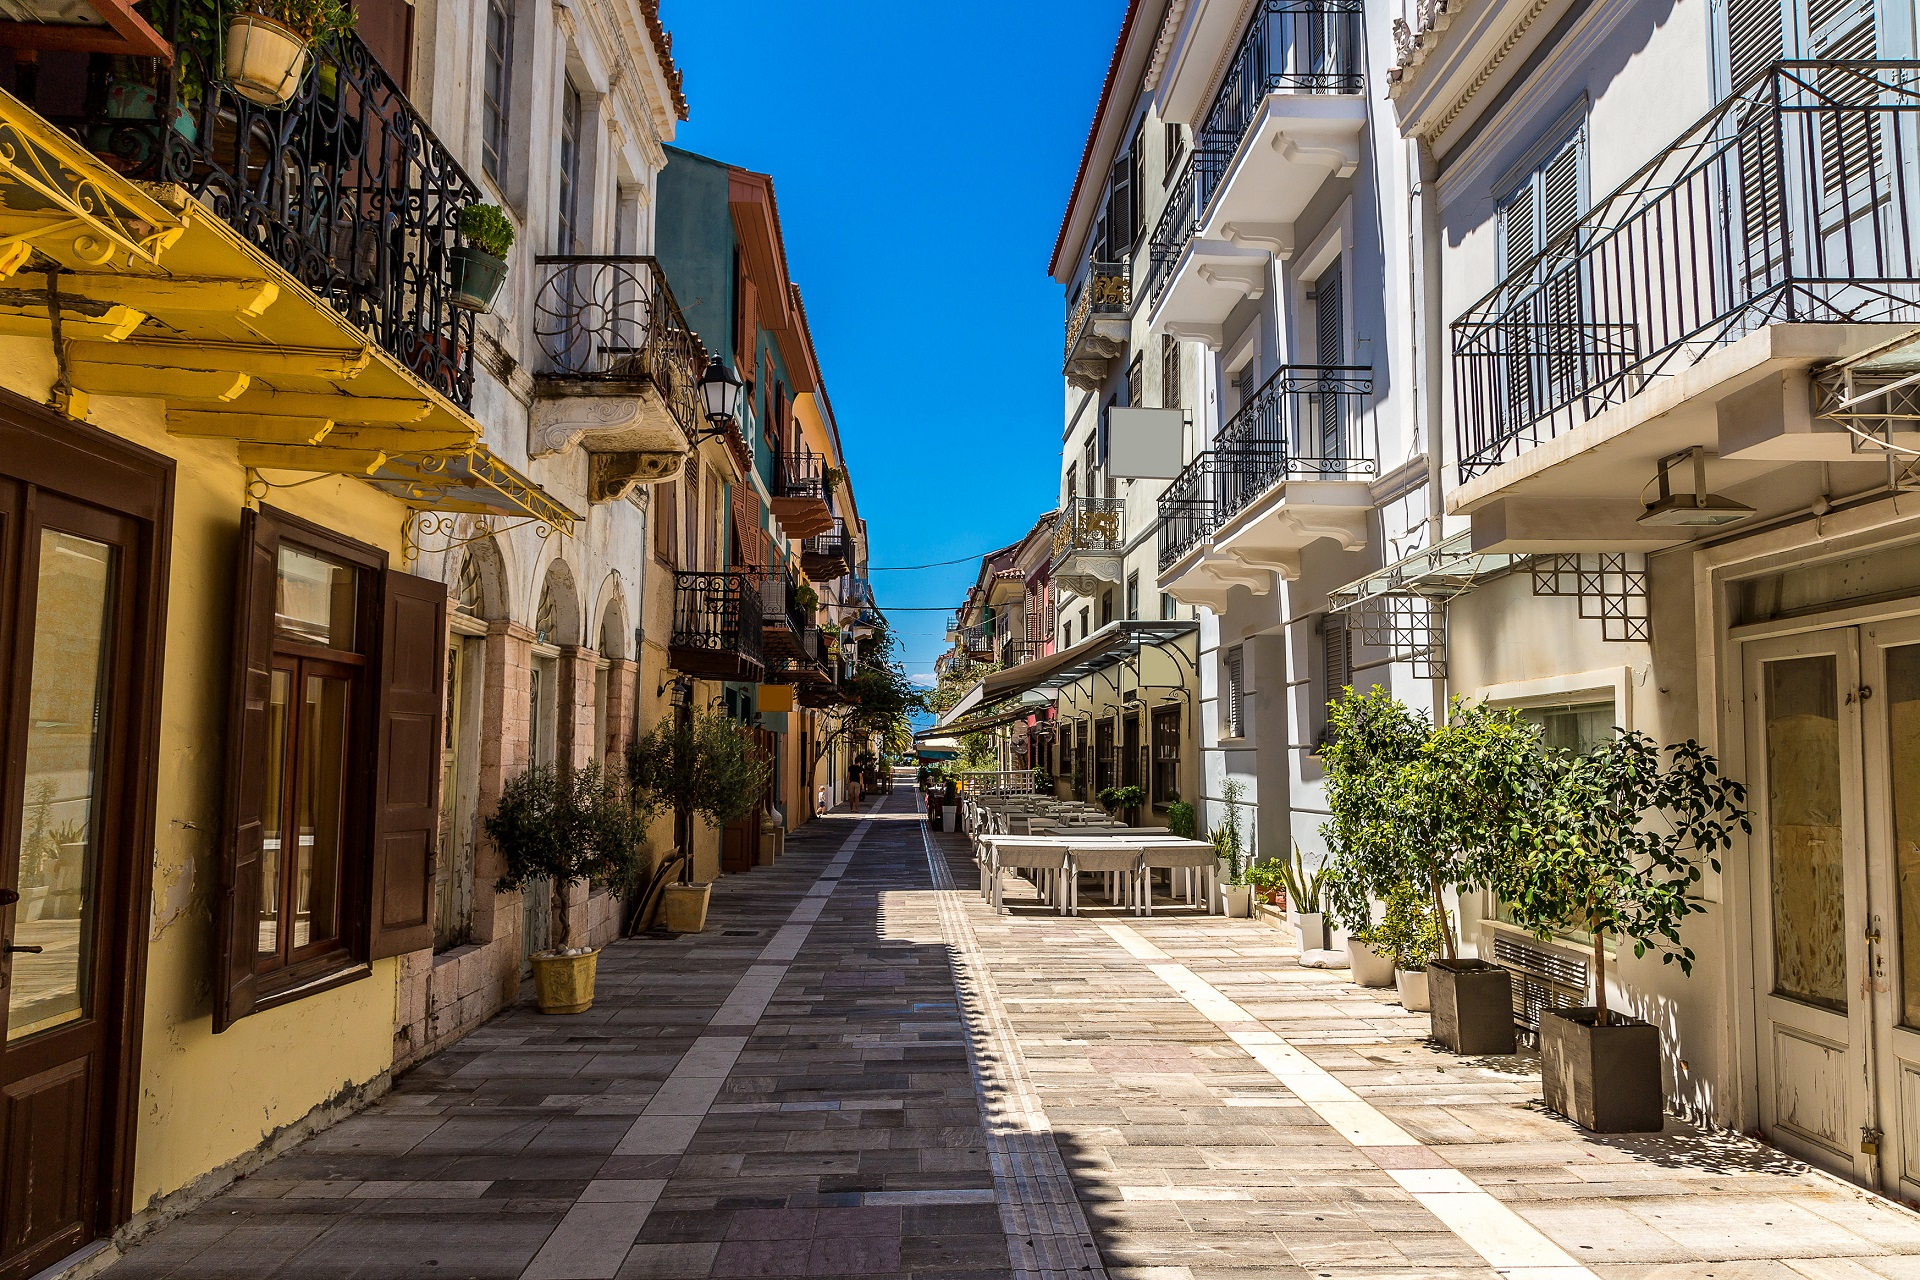 Streets in Nafplio